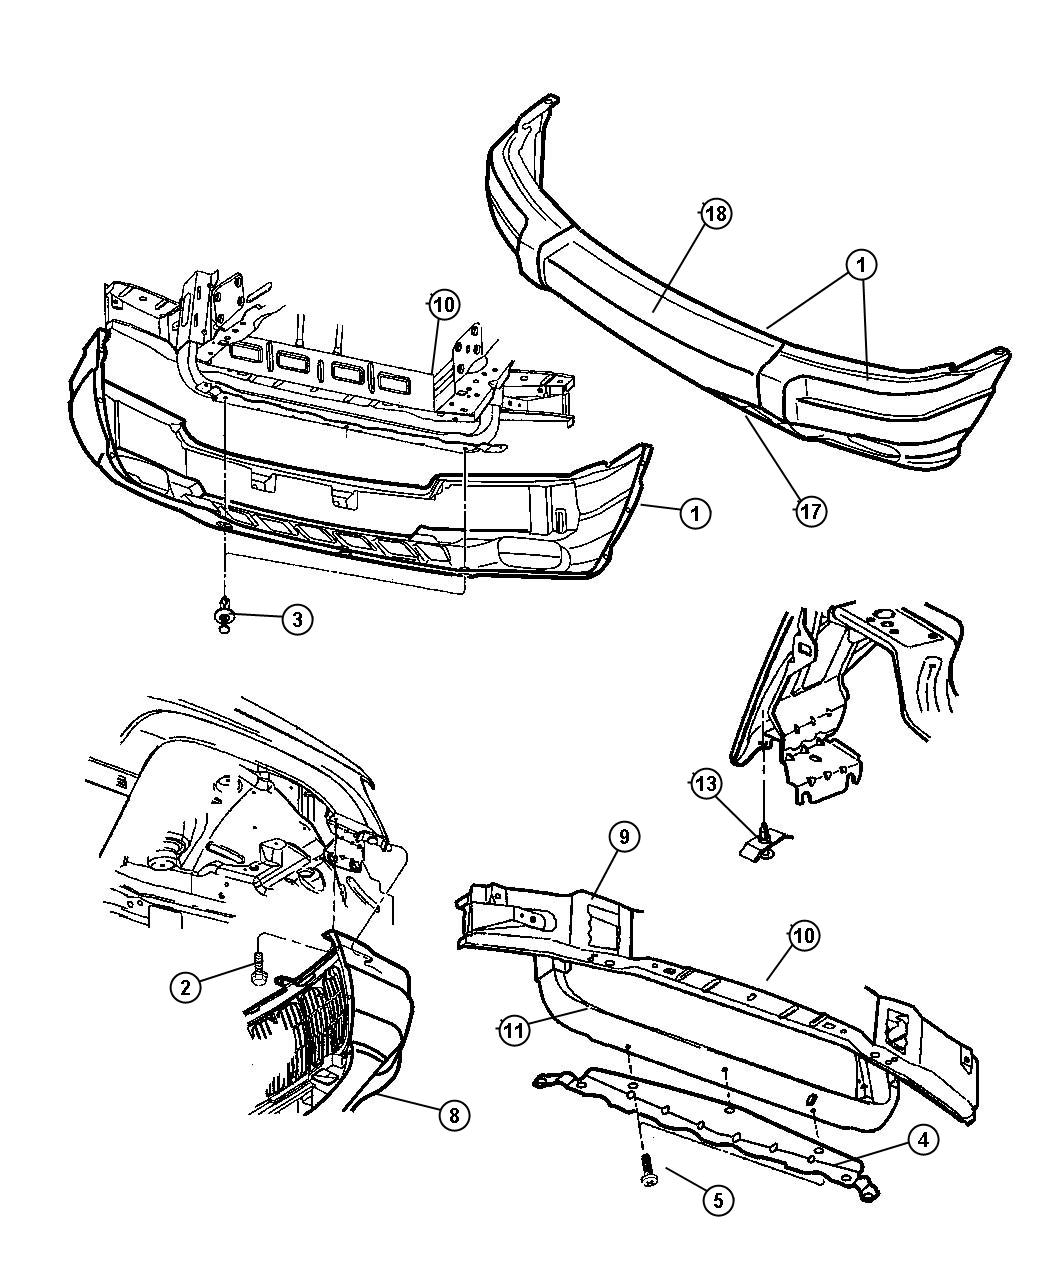 jeep cherokee bumper parts diagram  jeep  auto wiring diagram